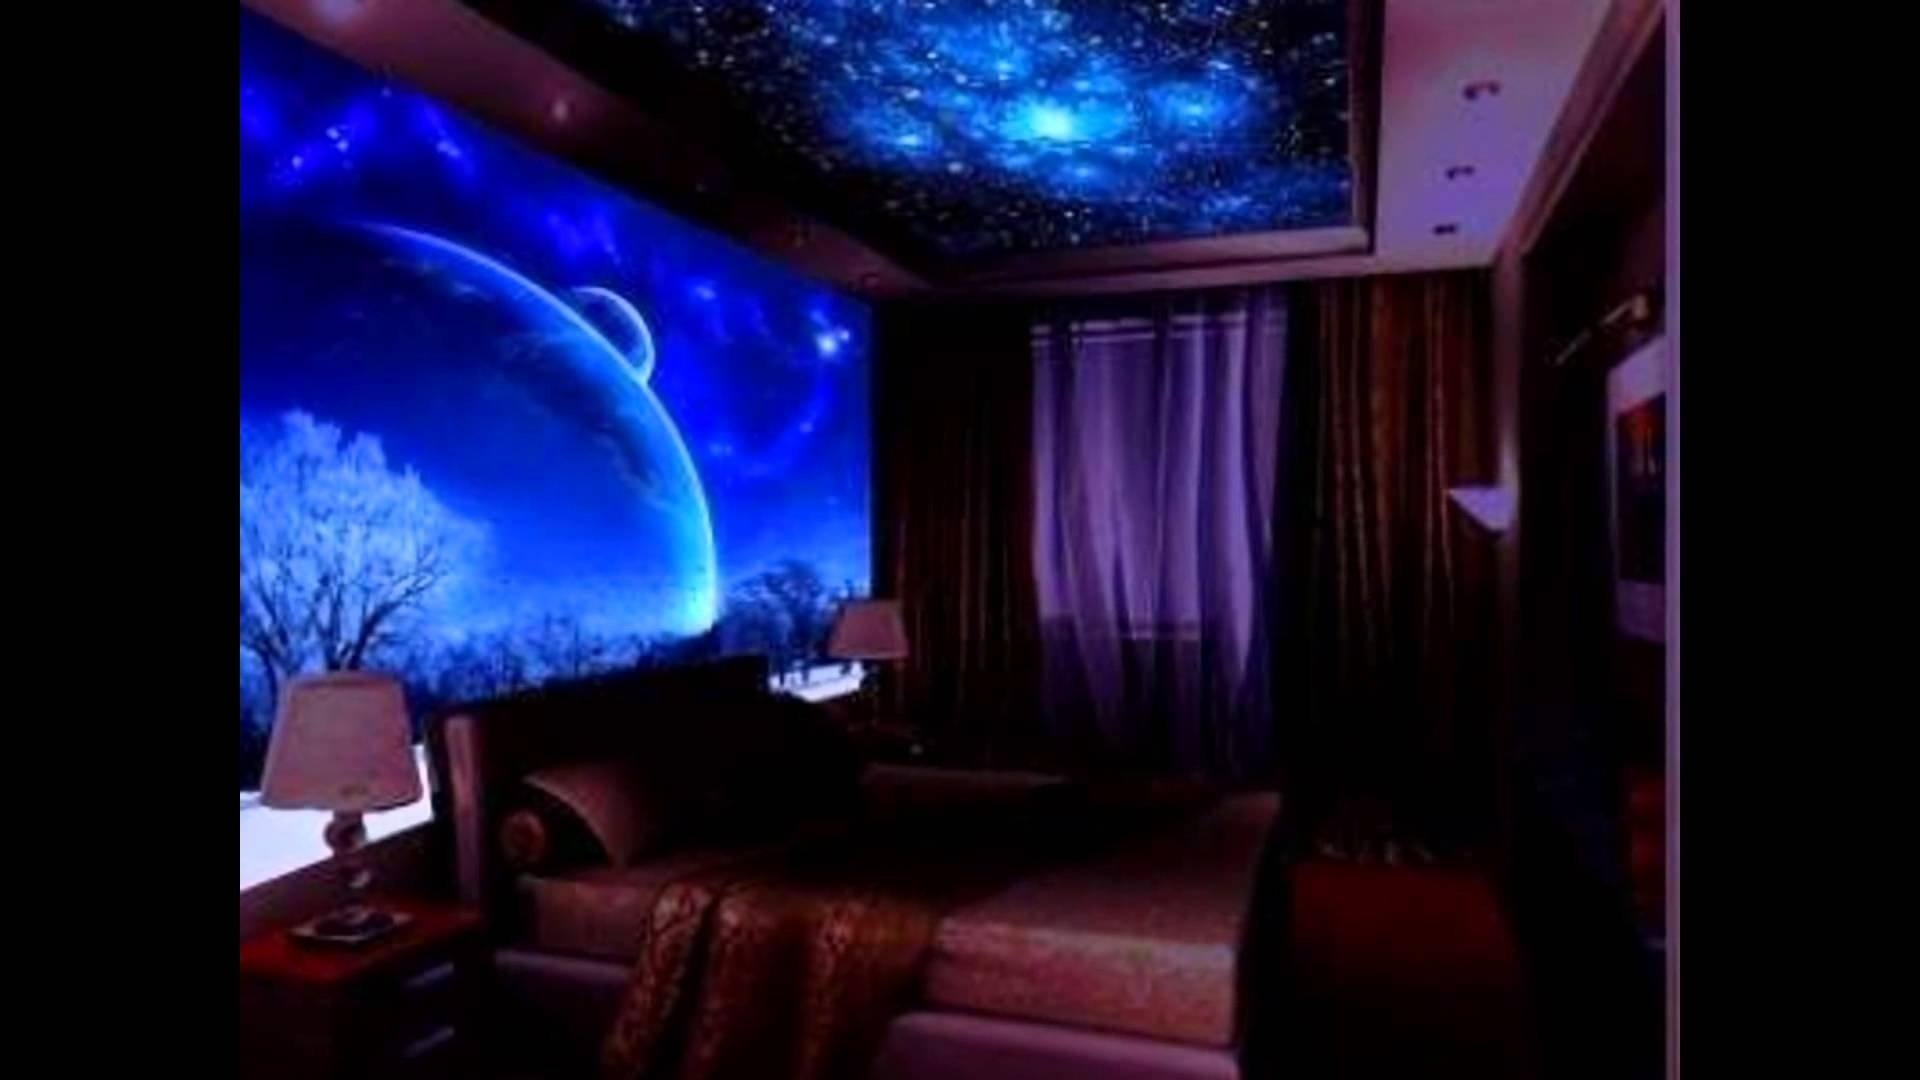 glow in the dark bedroom design ideas inspiration - youtube